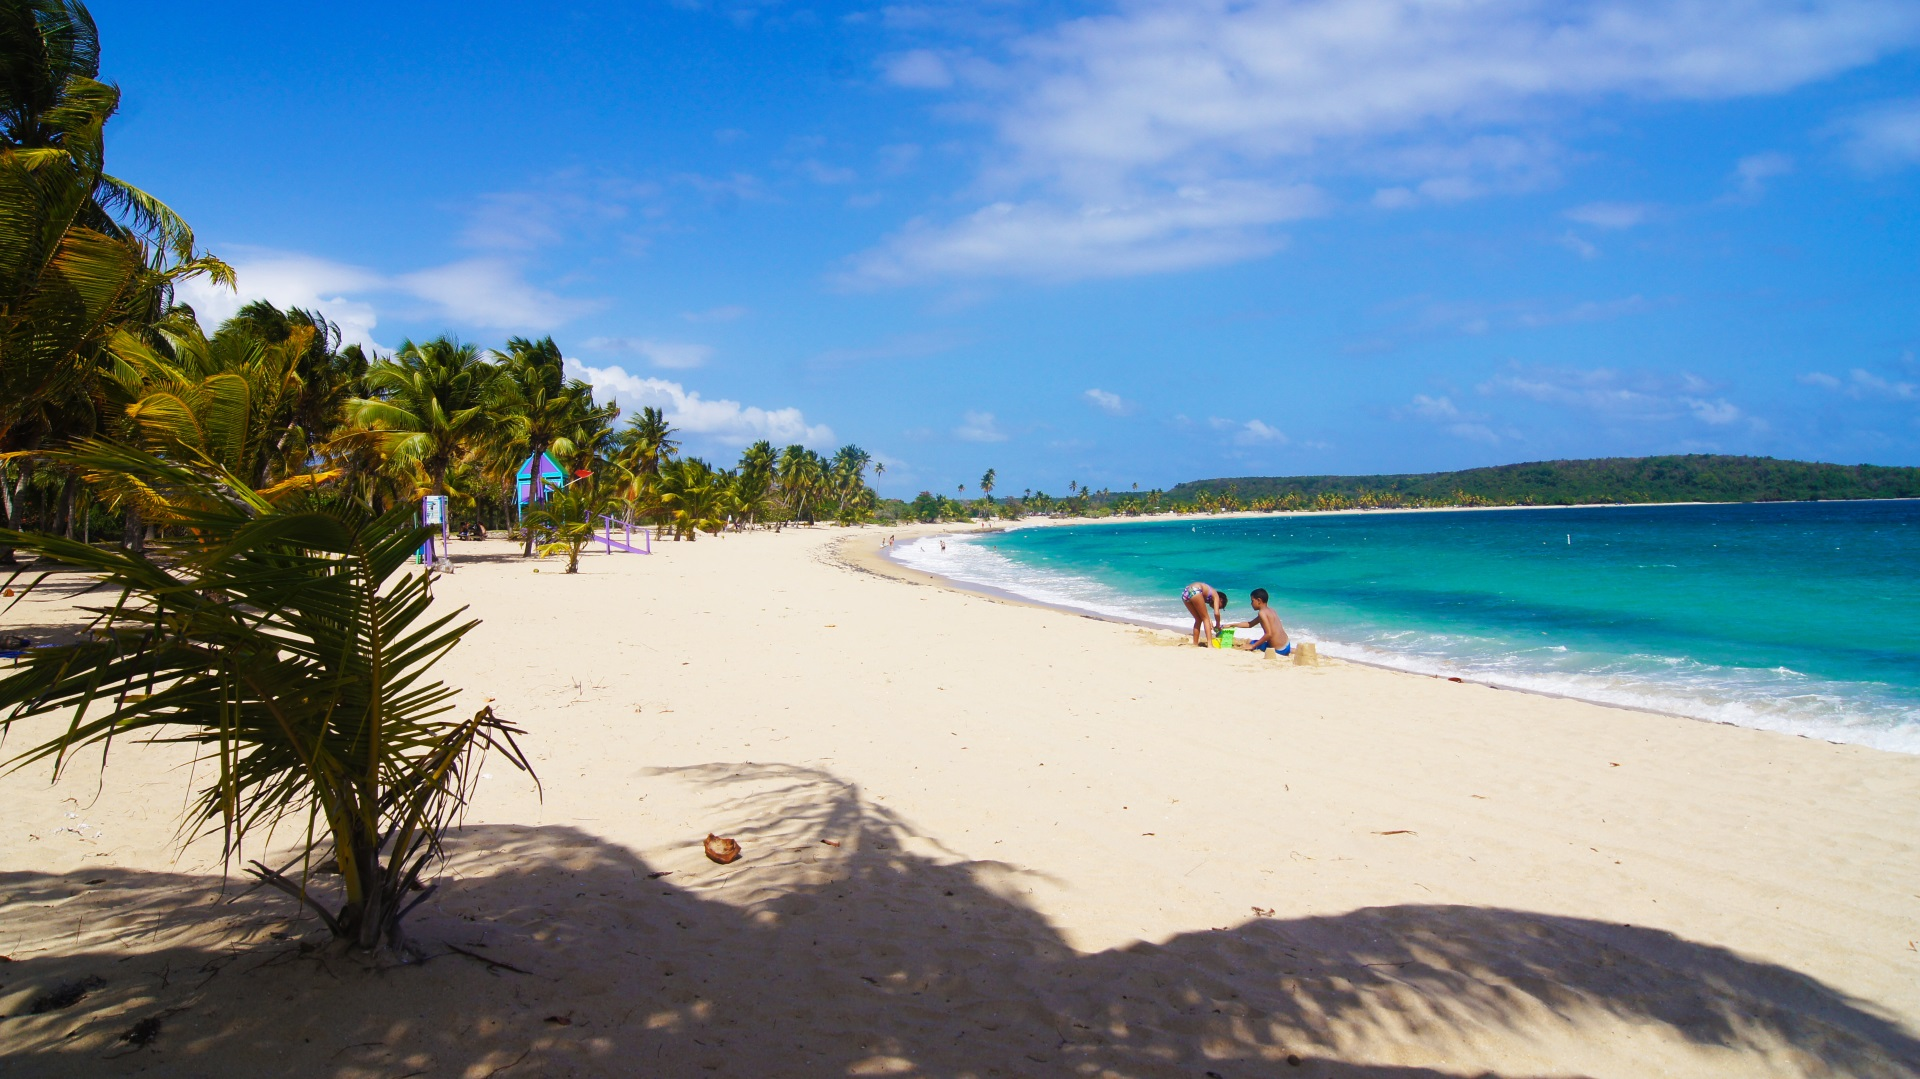 Insel Vieques in Puerto Rico